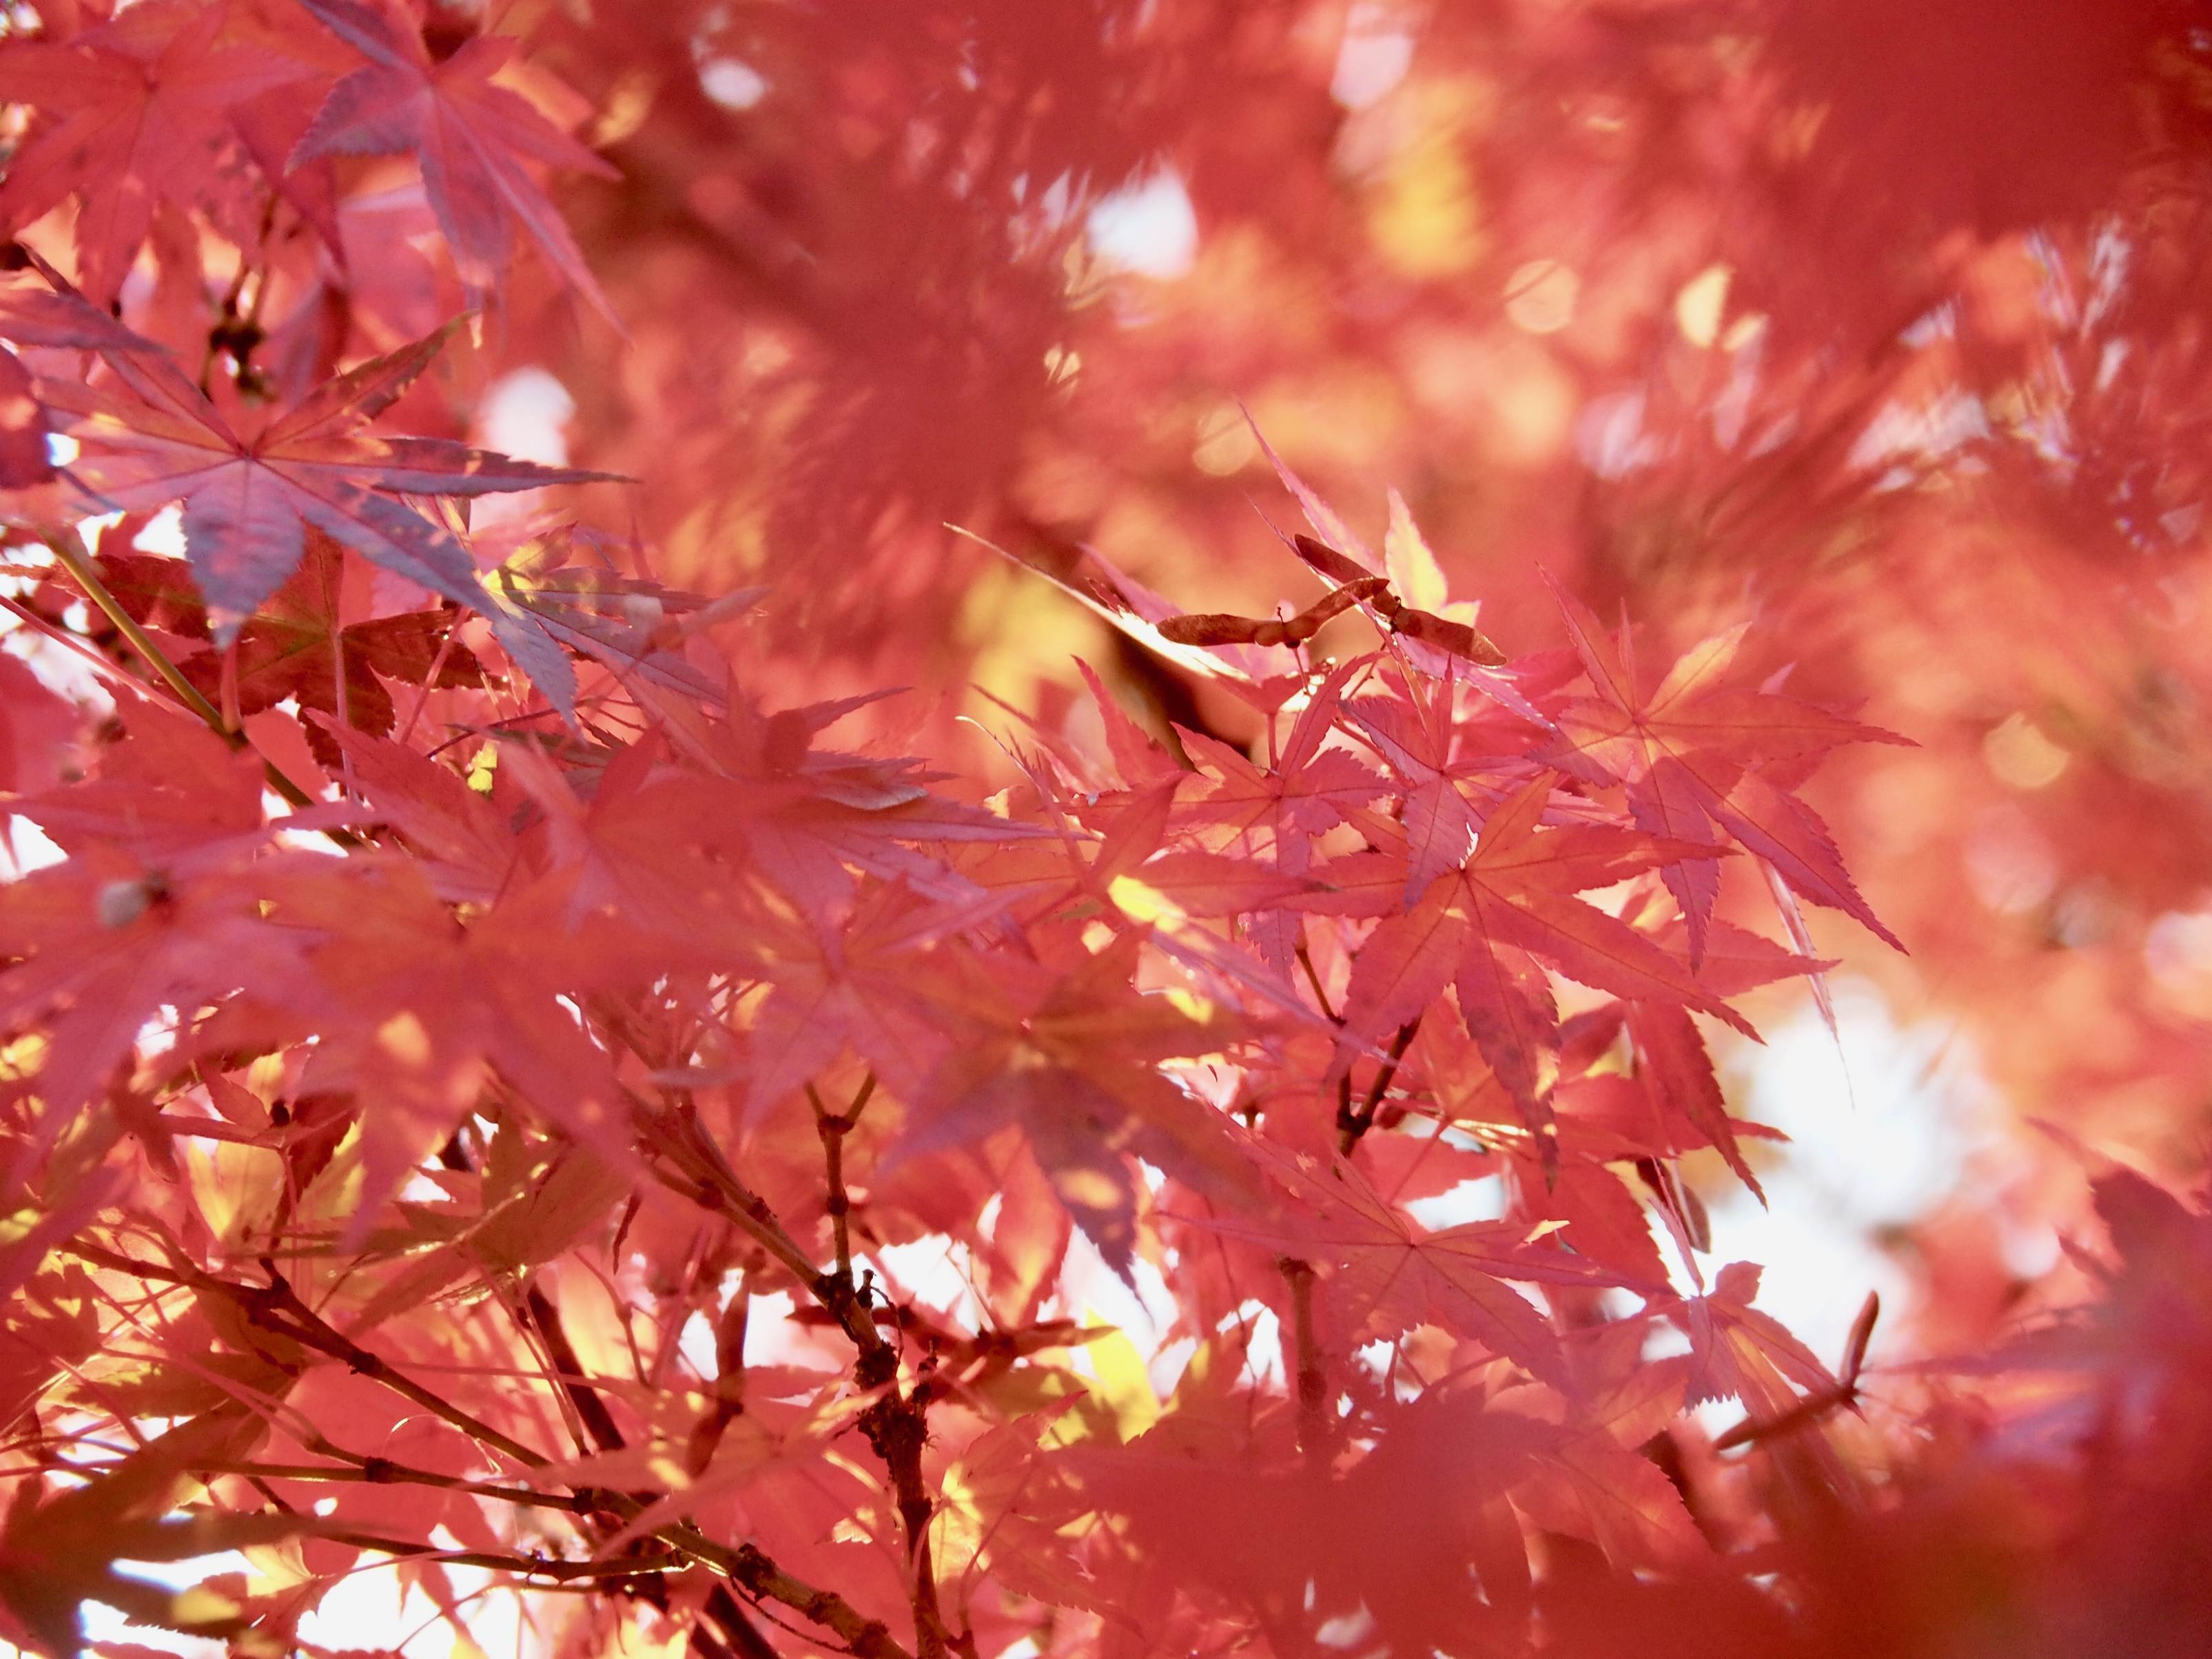 Pink-red Japanese maple leaves